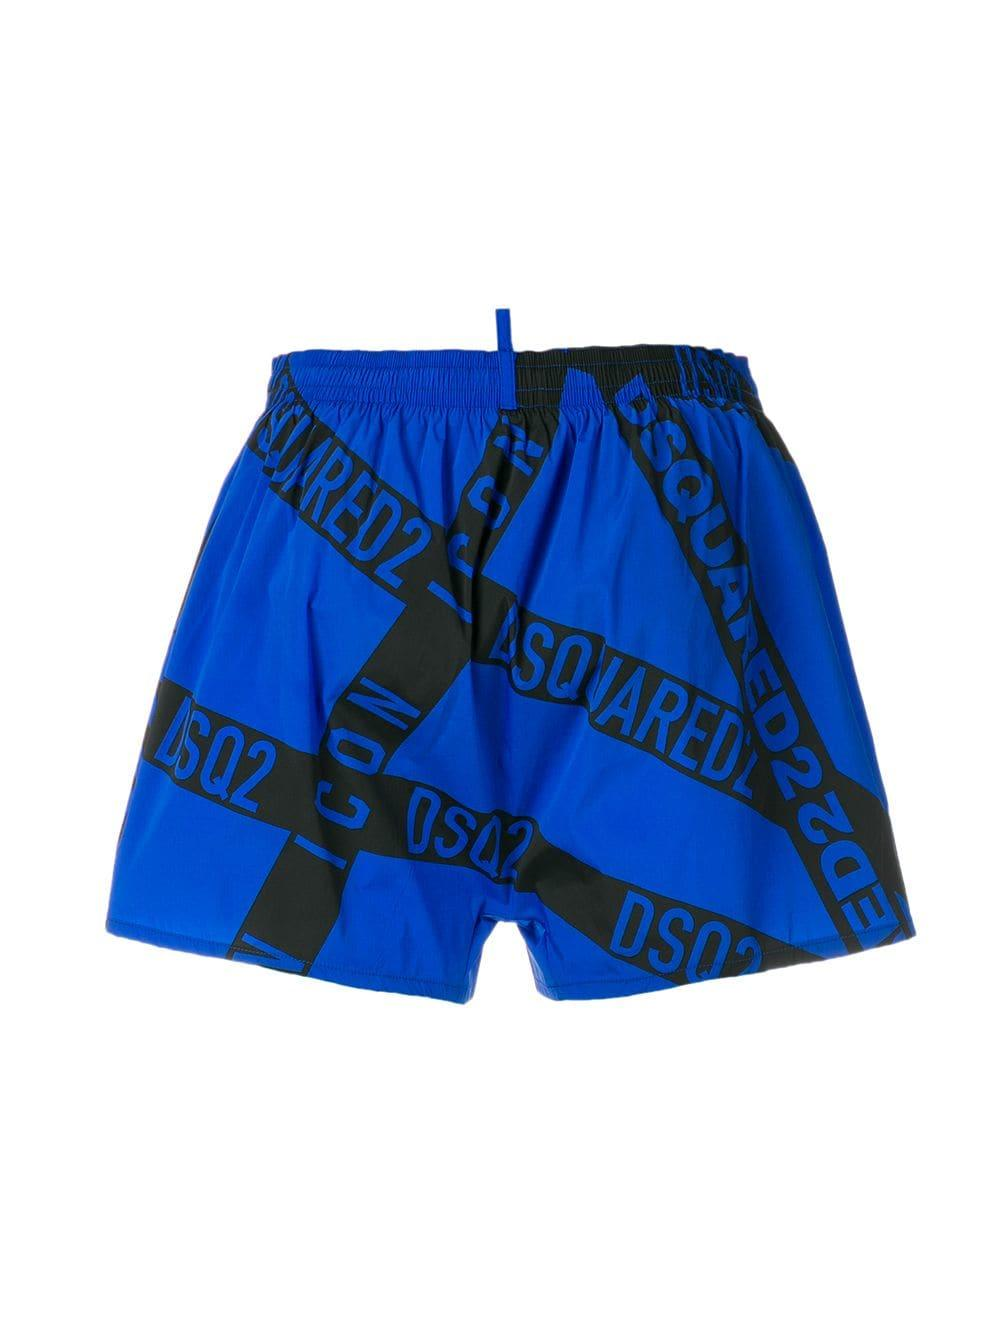 0397862f9d Lyst - Dsquared² Branded Swim Shorts in Blue for Men